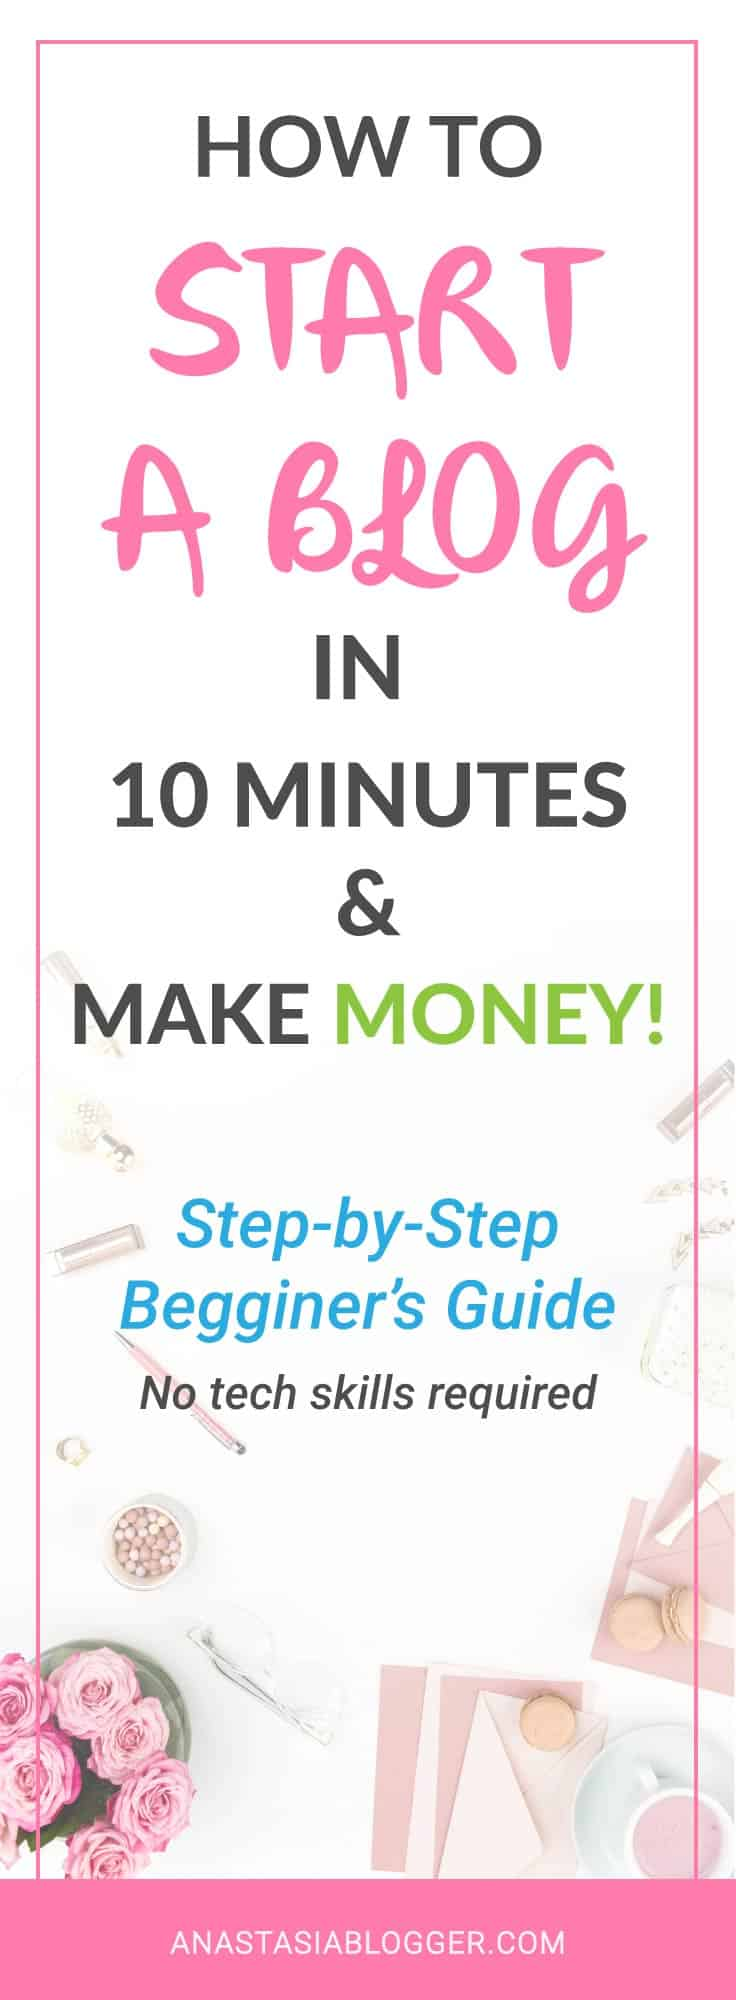 How to Start a Blog in 10 minutes: a Step-by-Step Guide for Beginners. Start your blog and make money online! Find out how to choose and register a domain name, set up Bluehost hosting for your WordPress blog, how to install the best theme that will fit your style and audience.